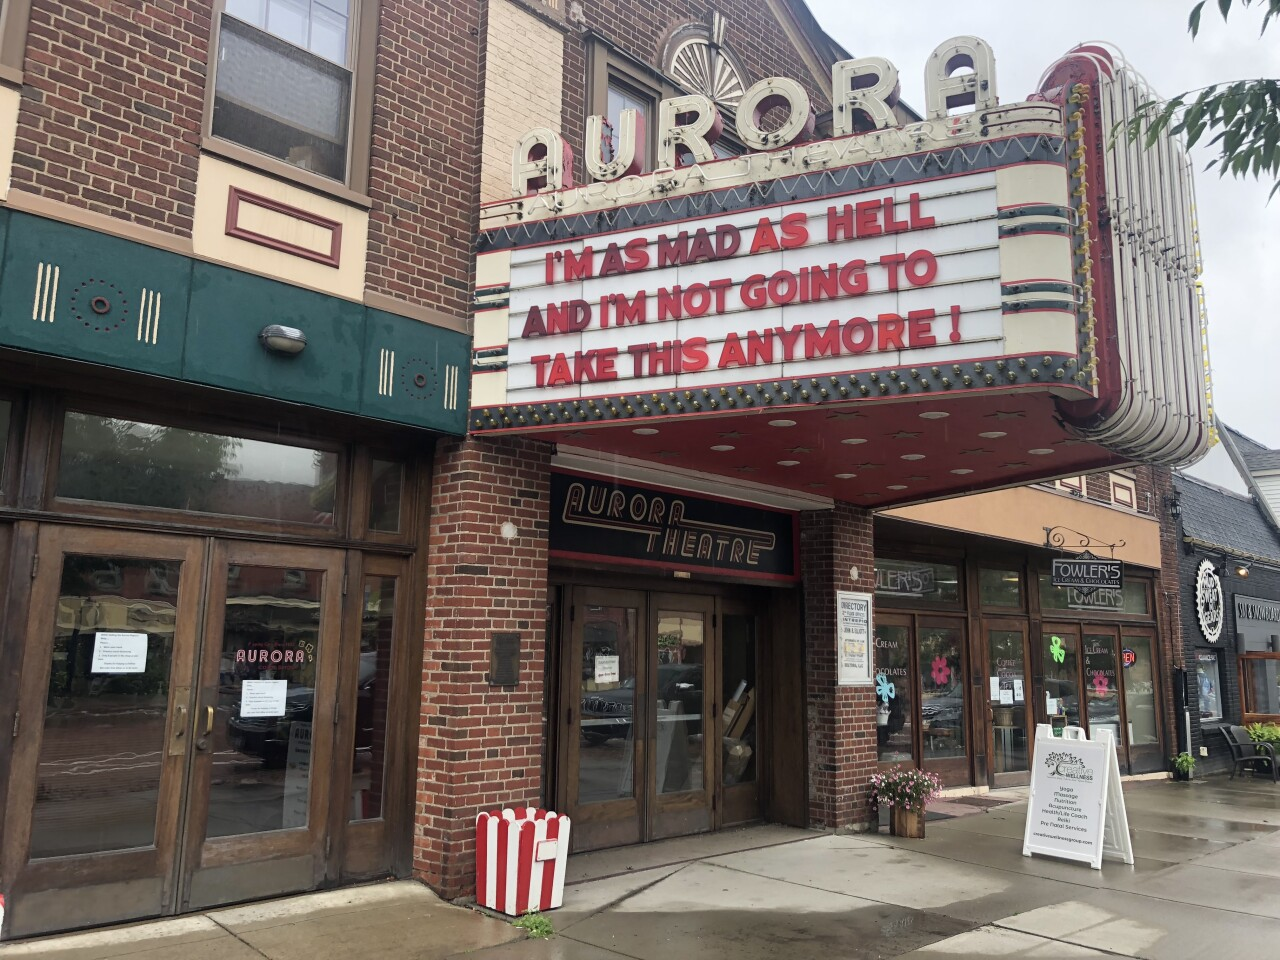 The Aurora Theater has been closed since March 16